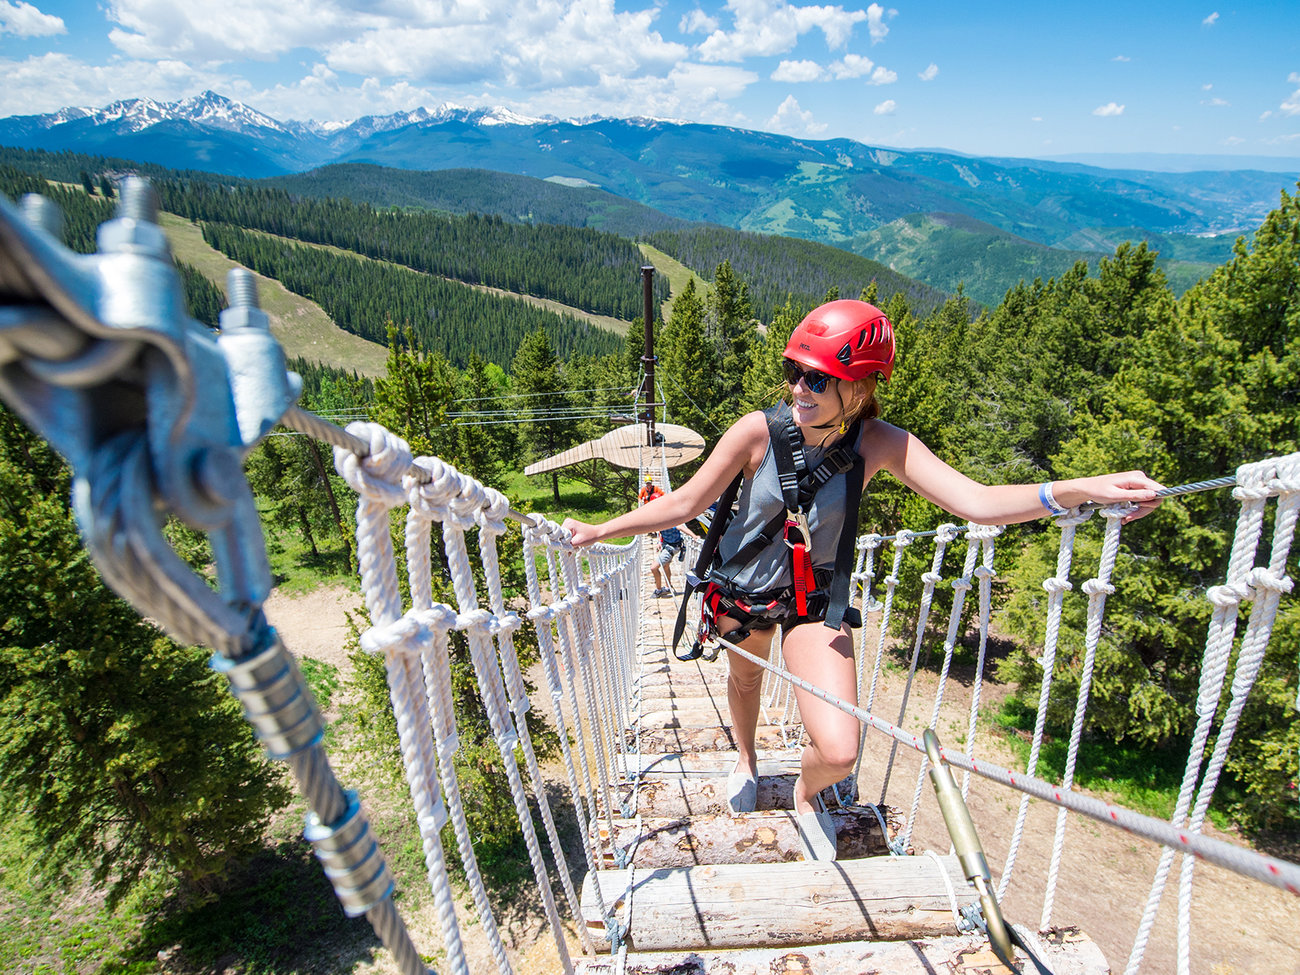 Epic Discovery Canopy Tour in Vail